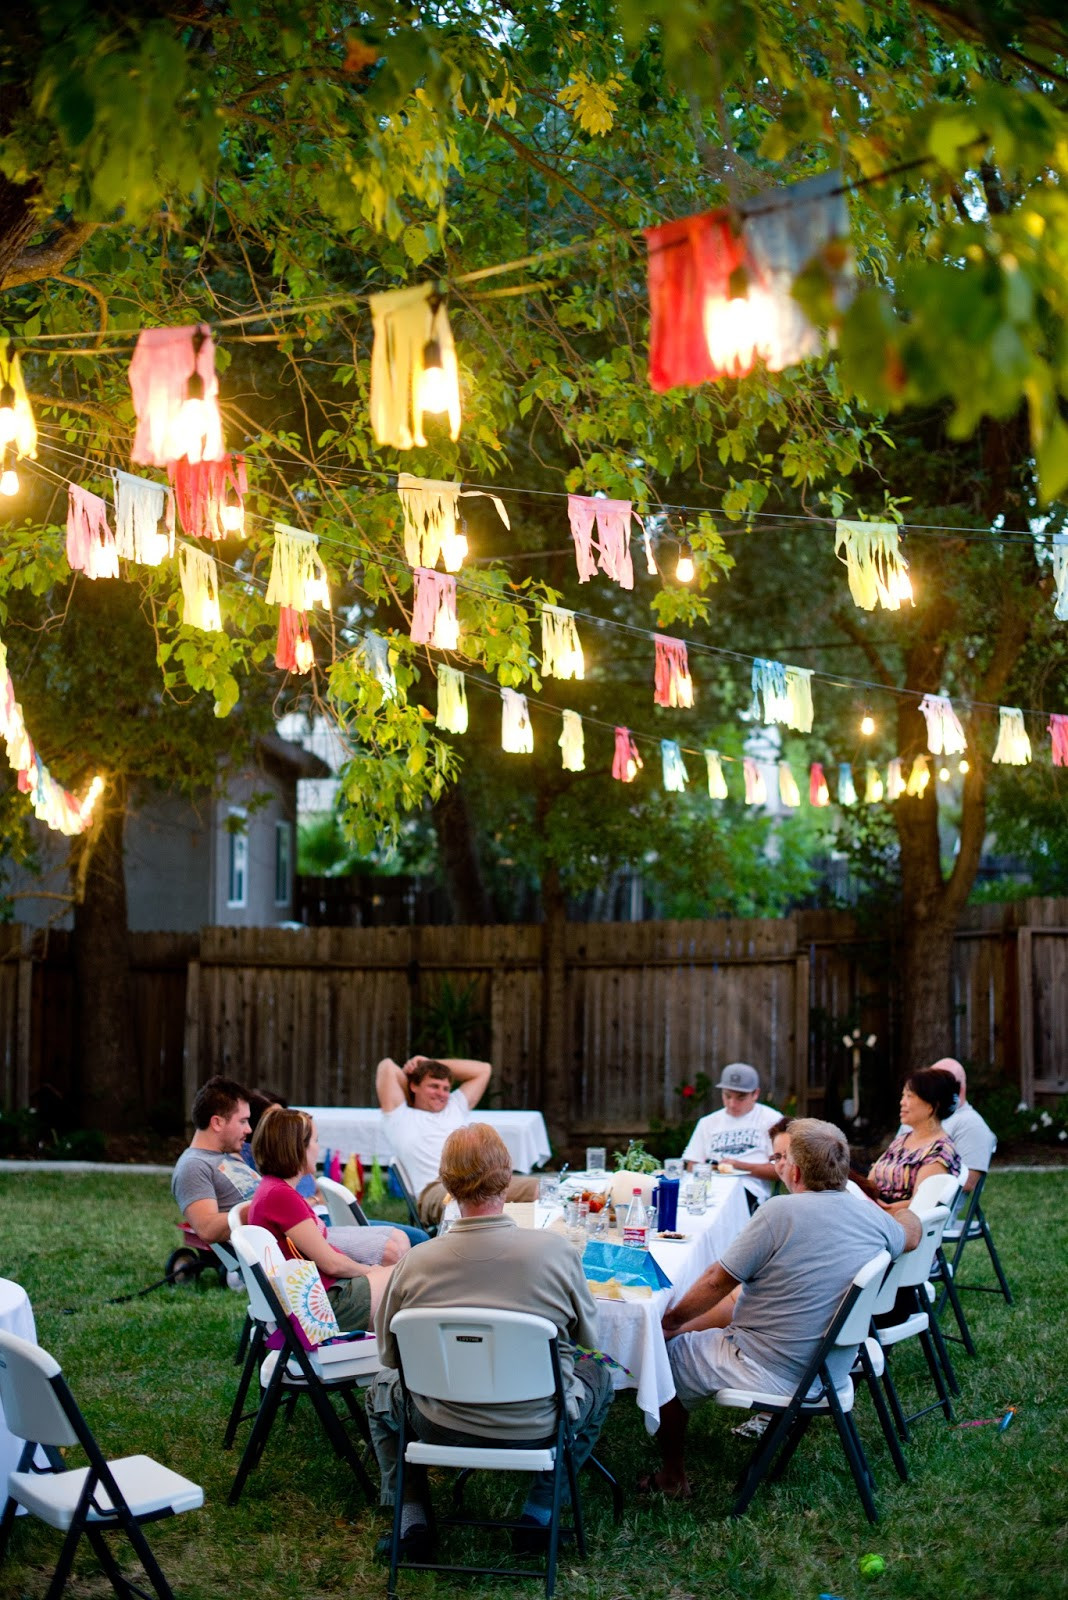 Backyard Party Decoration Ideas For Adults  Domestic Fashionista Backyard Fall Celebration